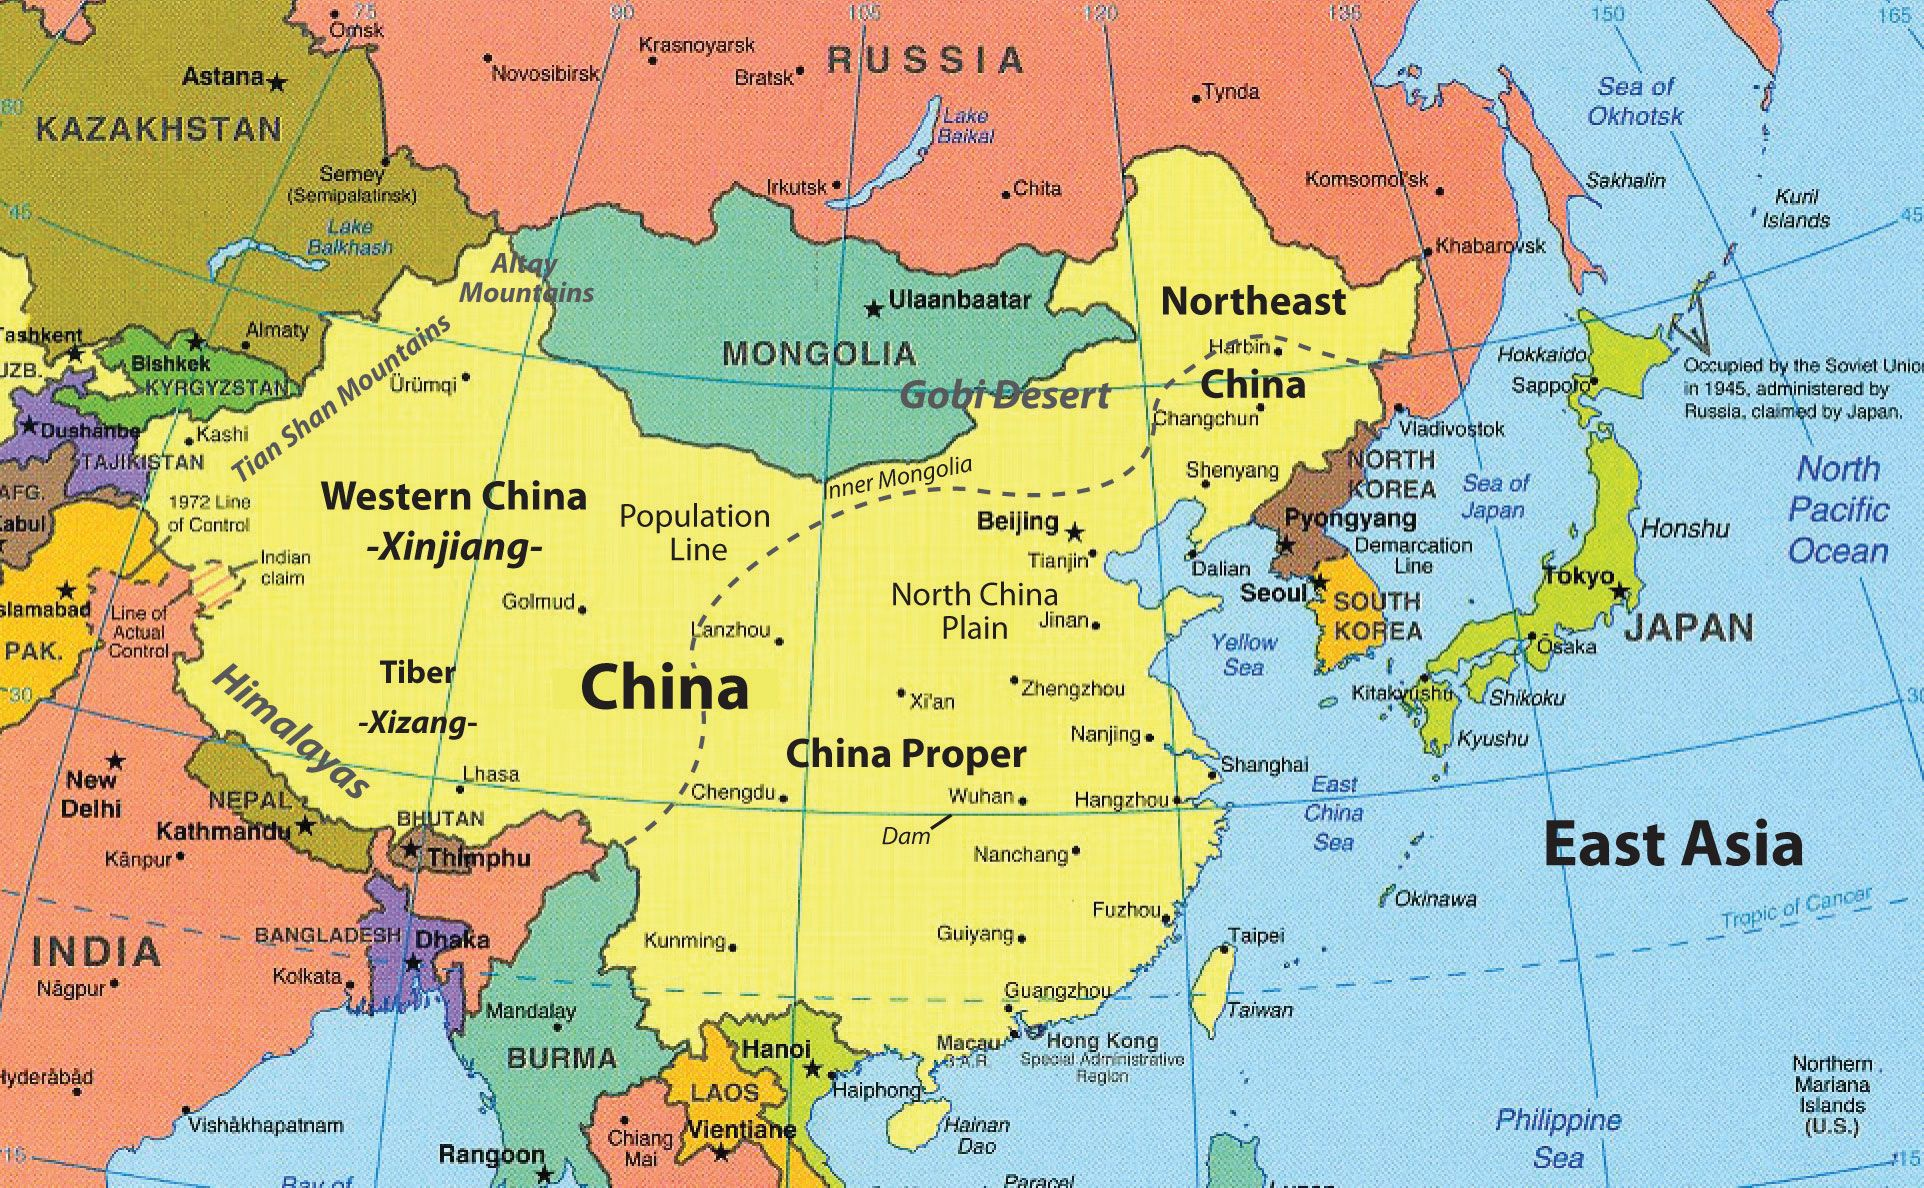 Map Of East Asia The Countries Are China Russia Japan North - Japan map korea